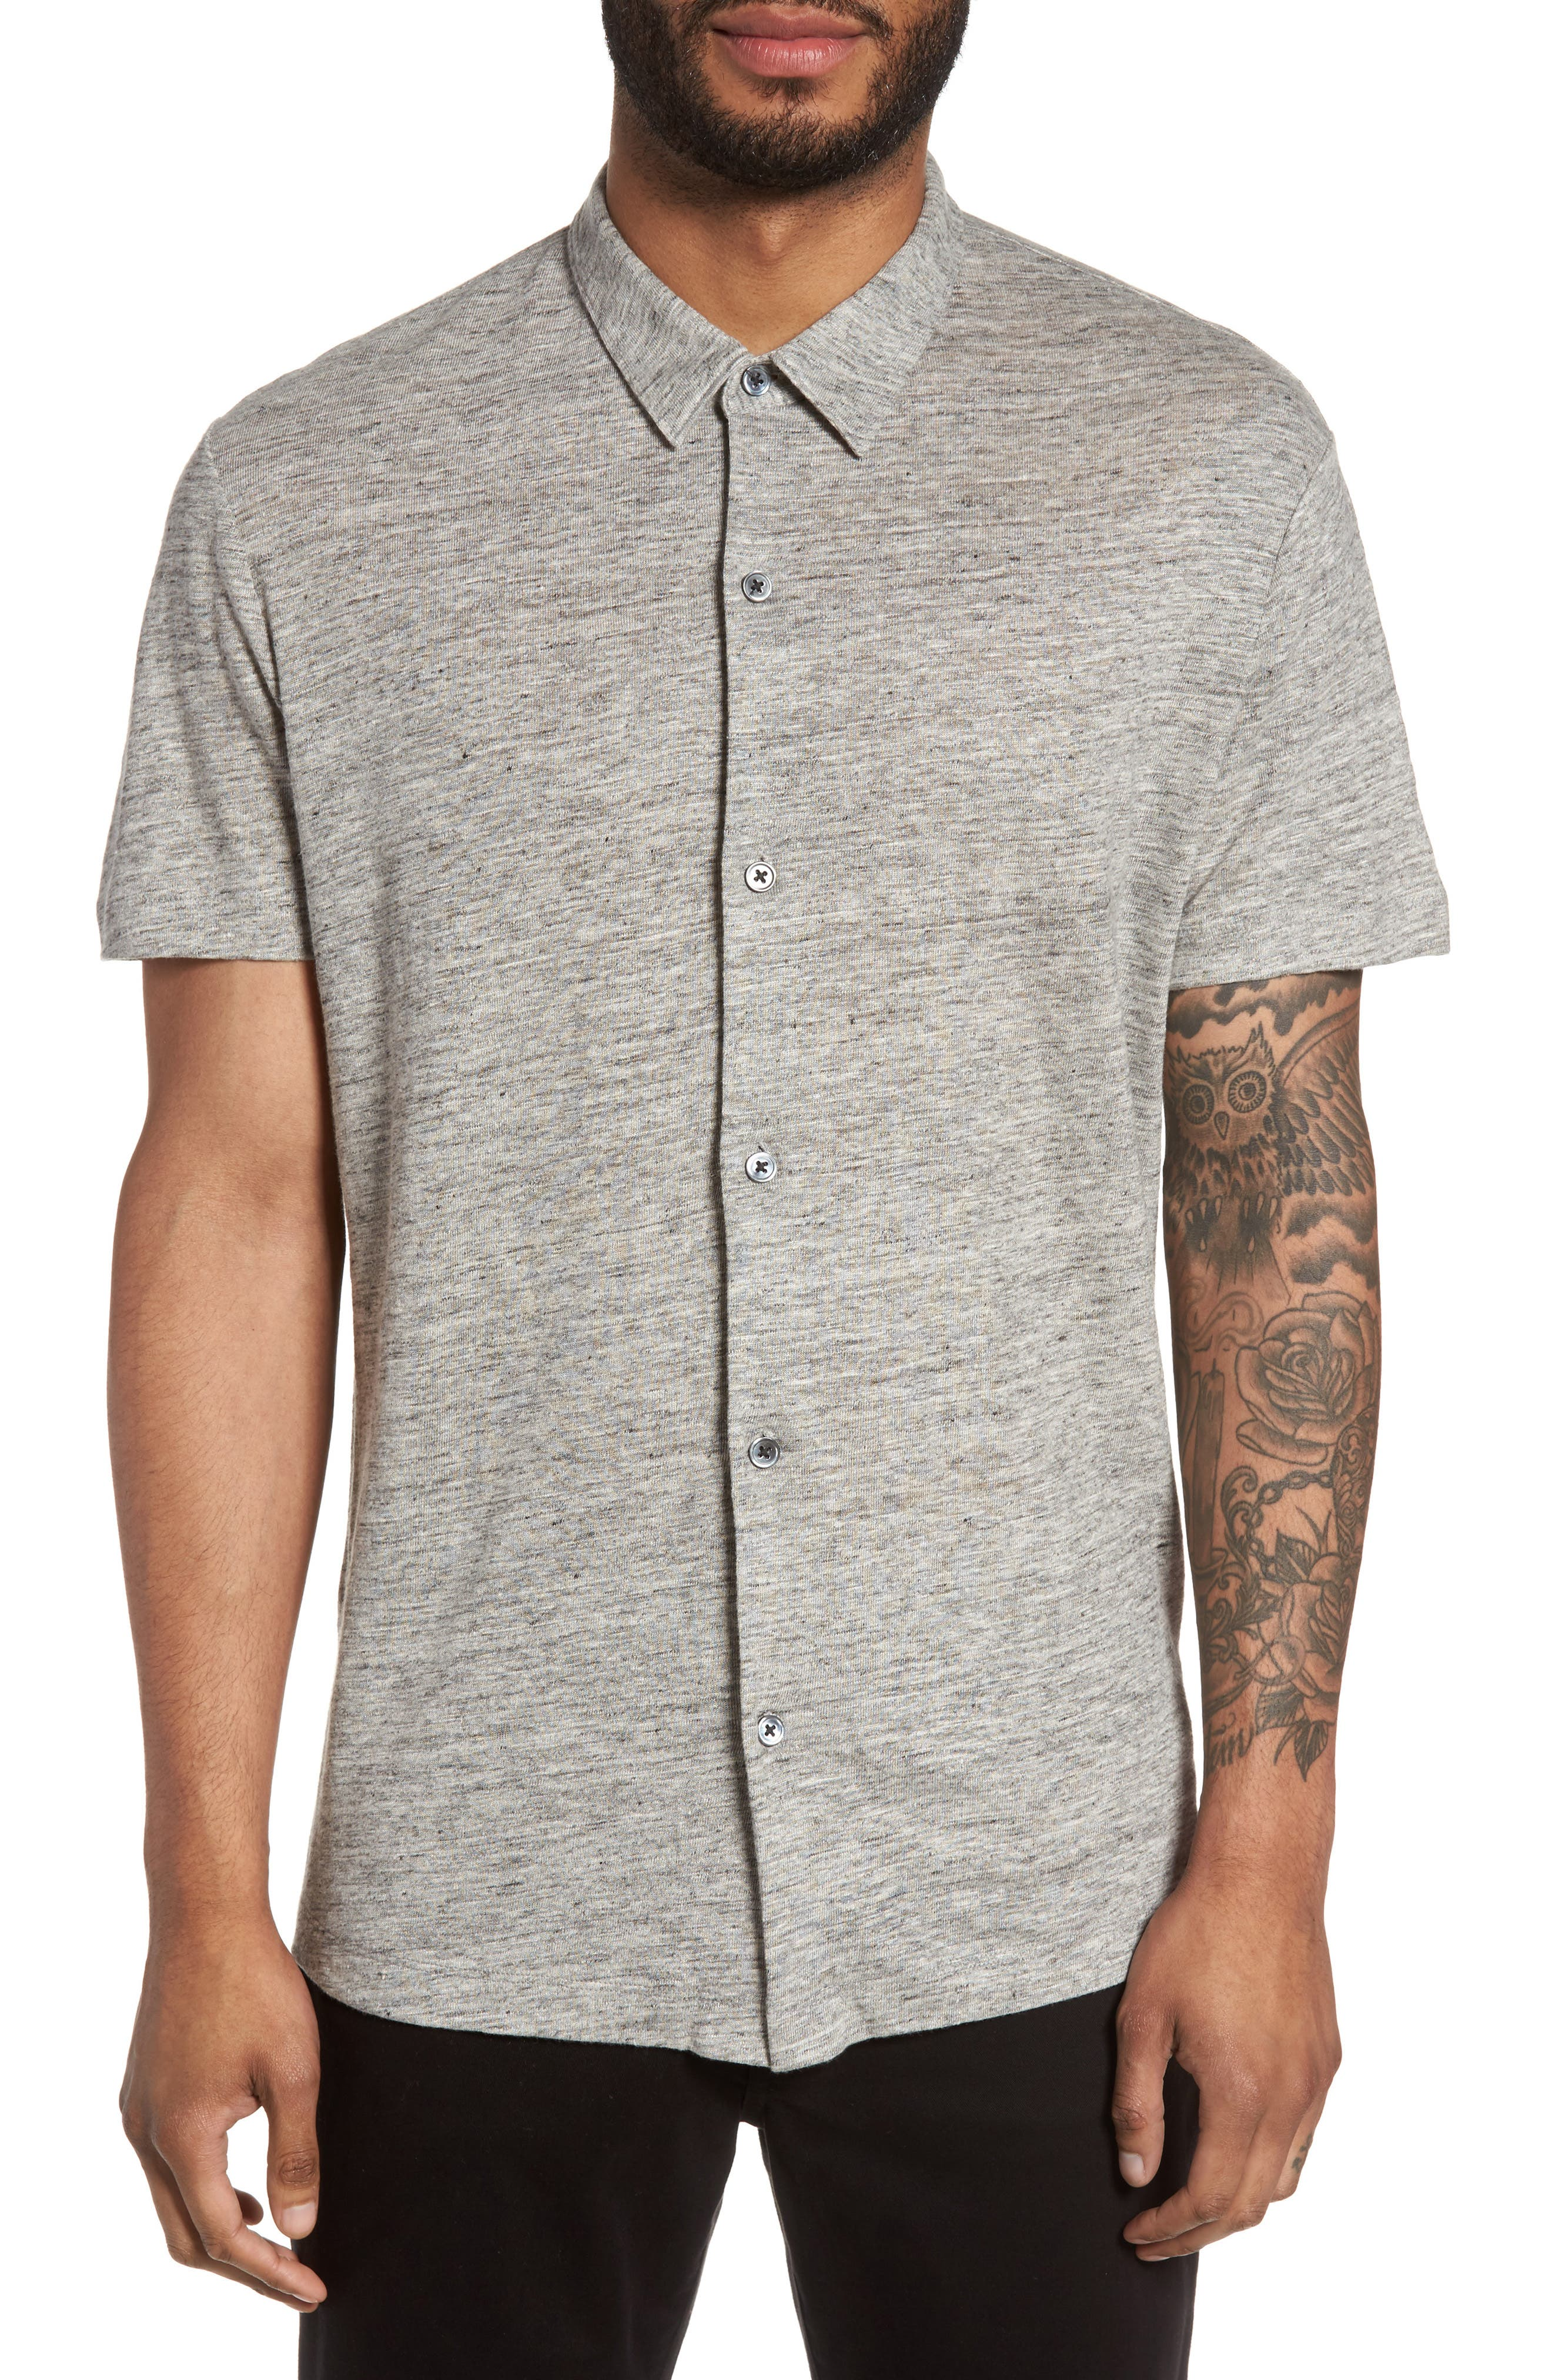 Alternate Image 1 Selected - Theory Linen Knit Sport Shirt